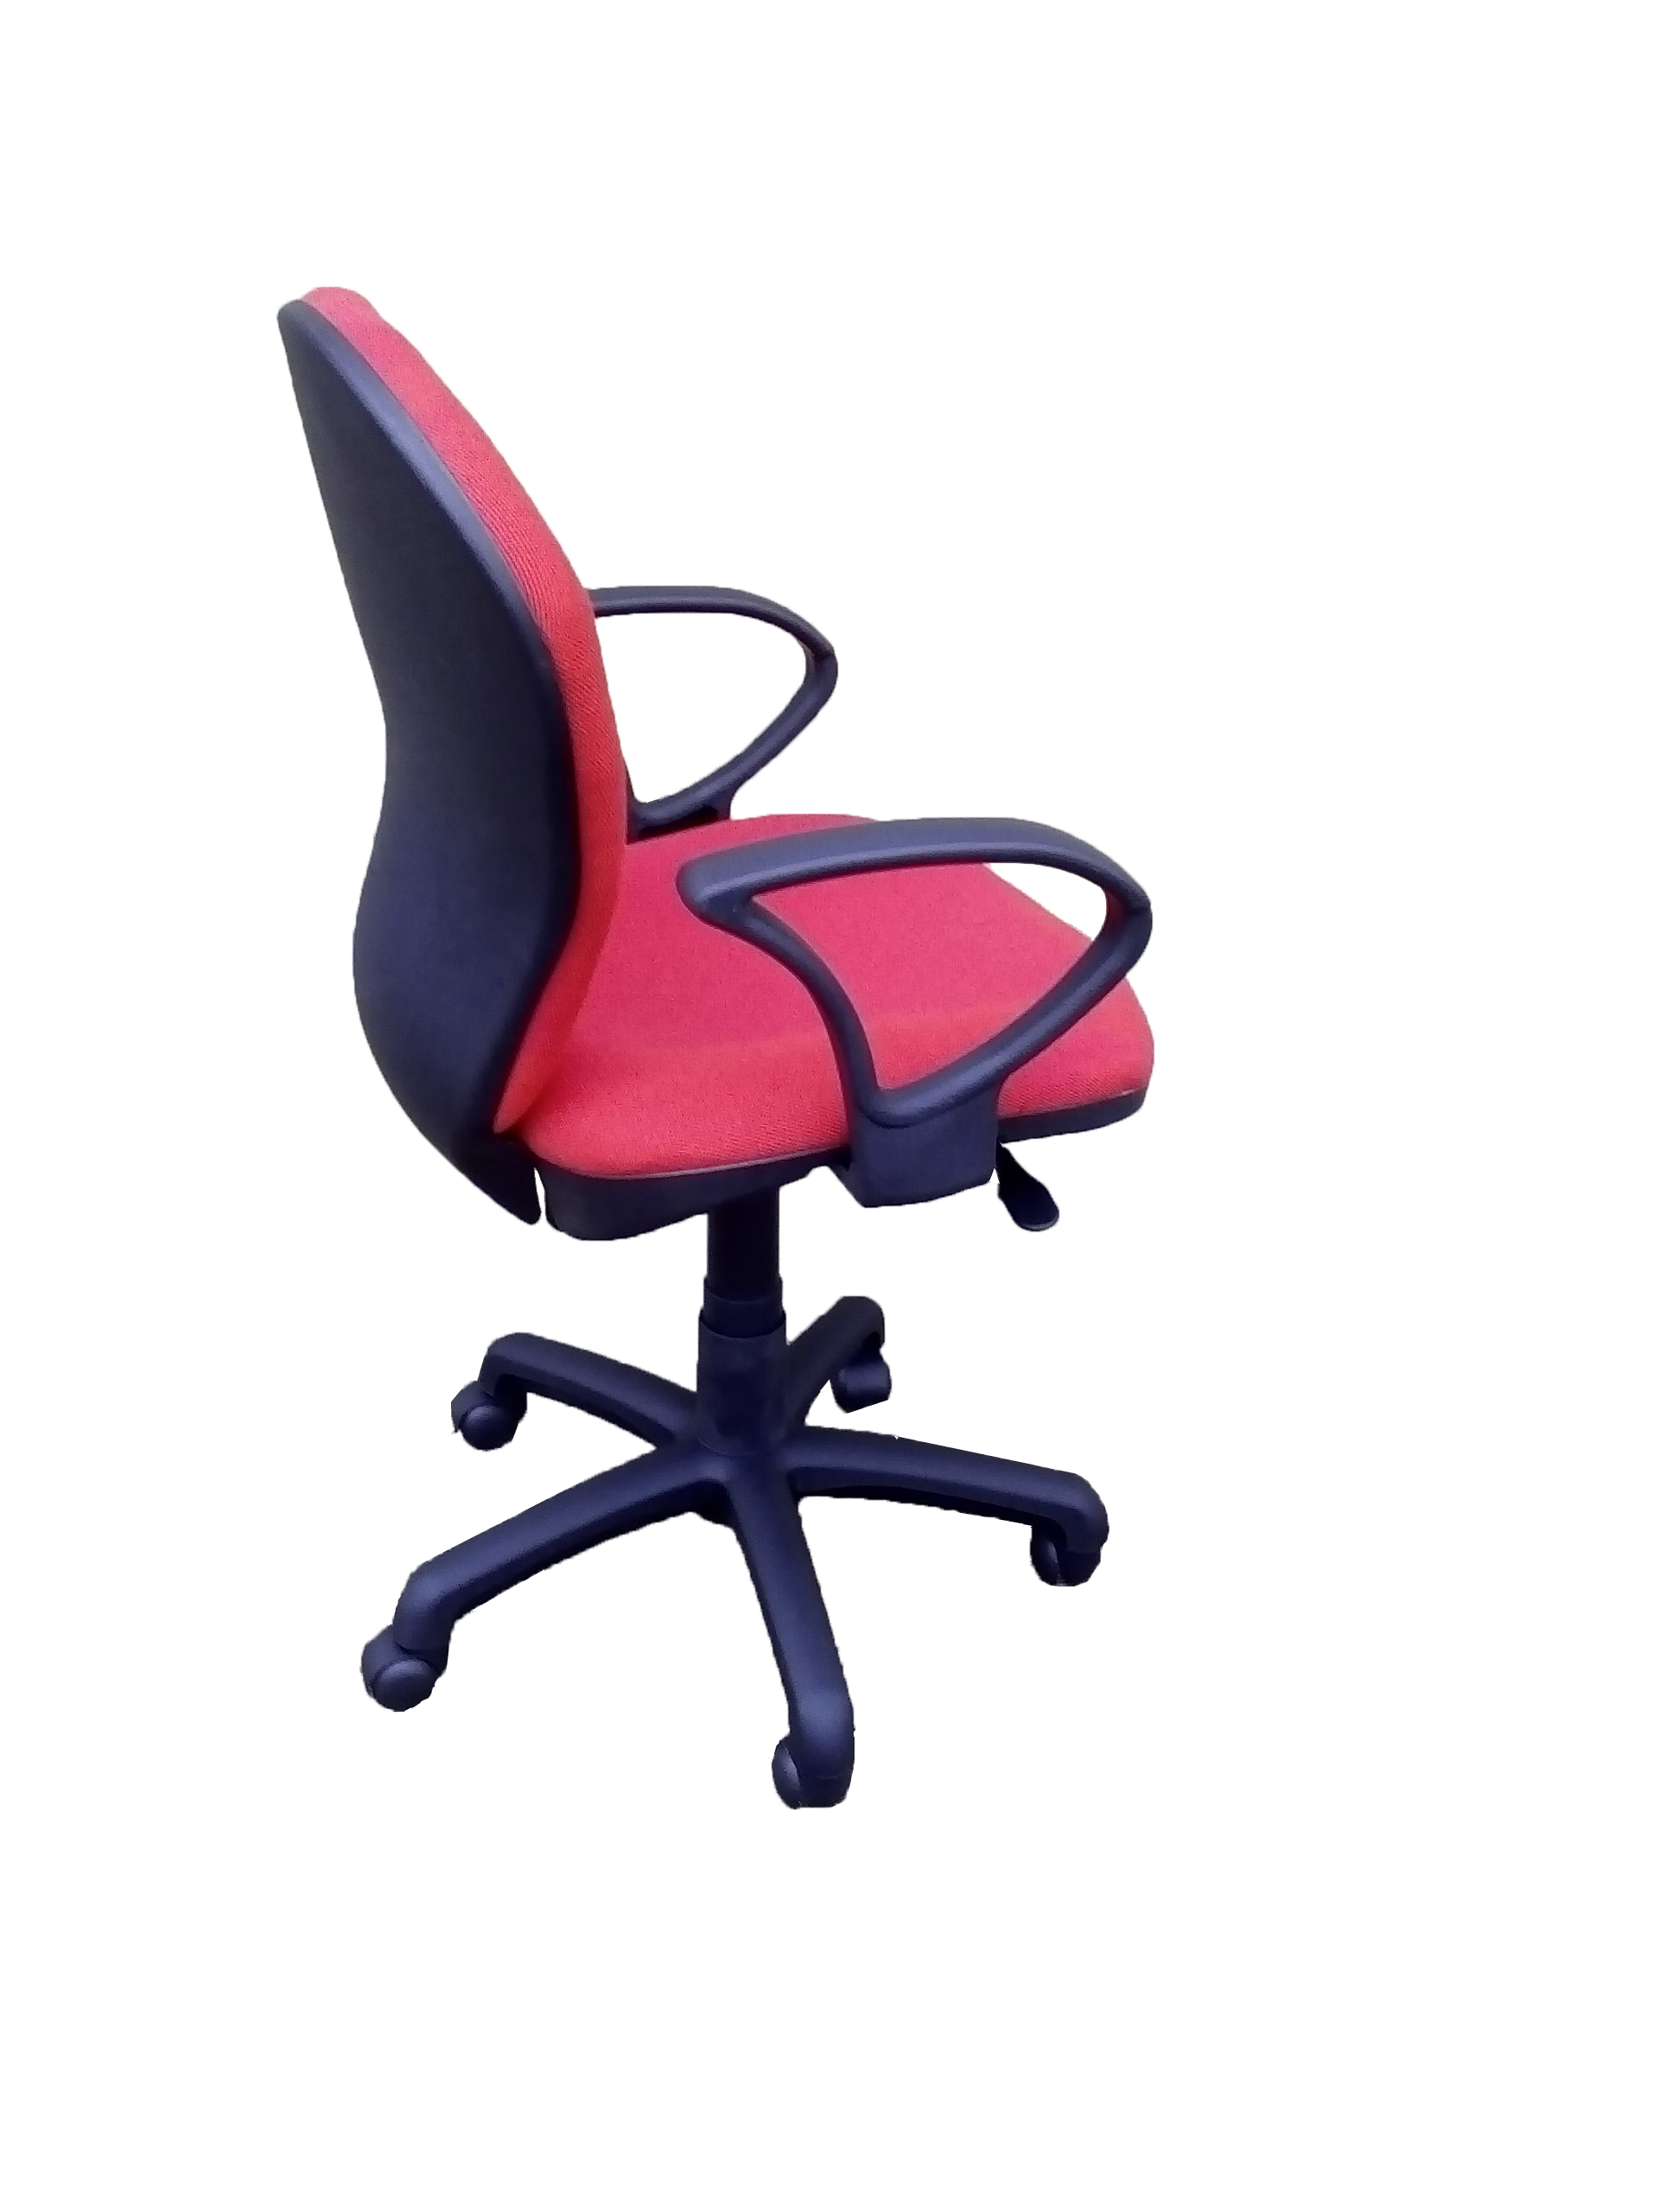 red office chairs. Sg821h-RED-secretary-office-chair-SIDE Red Office Chairs